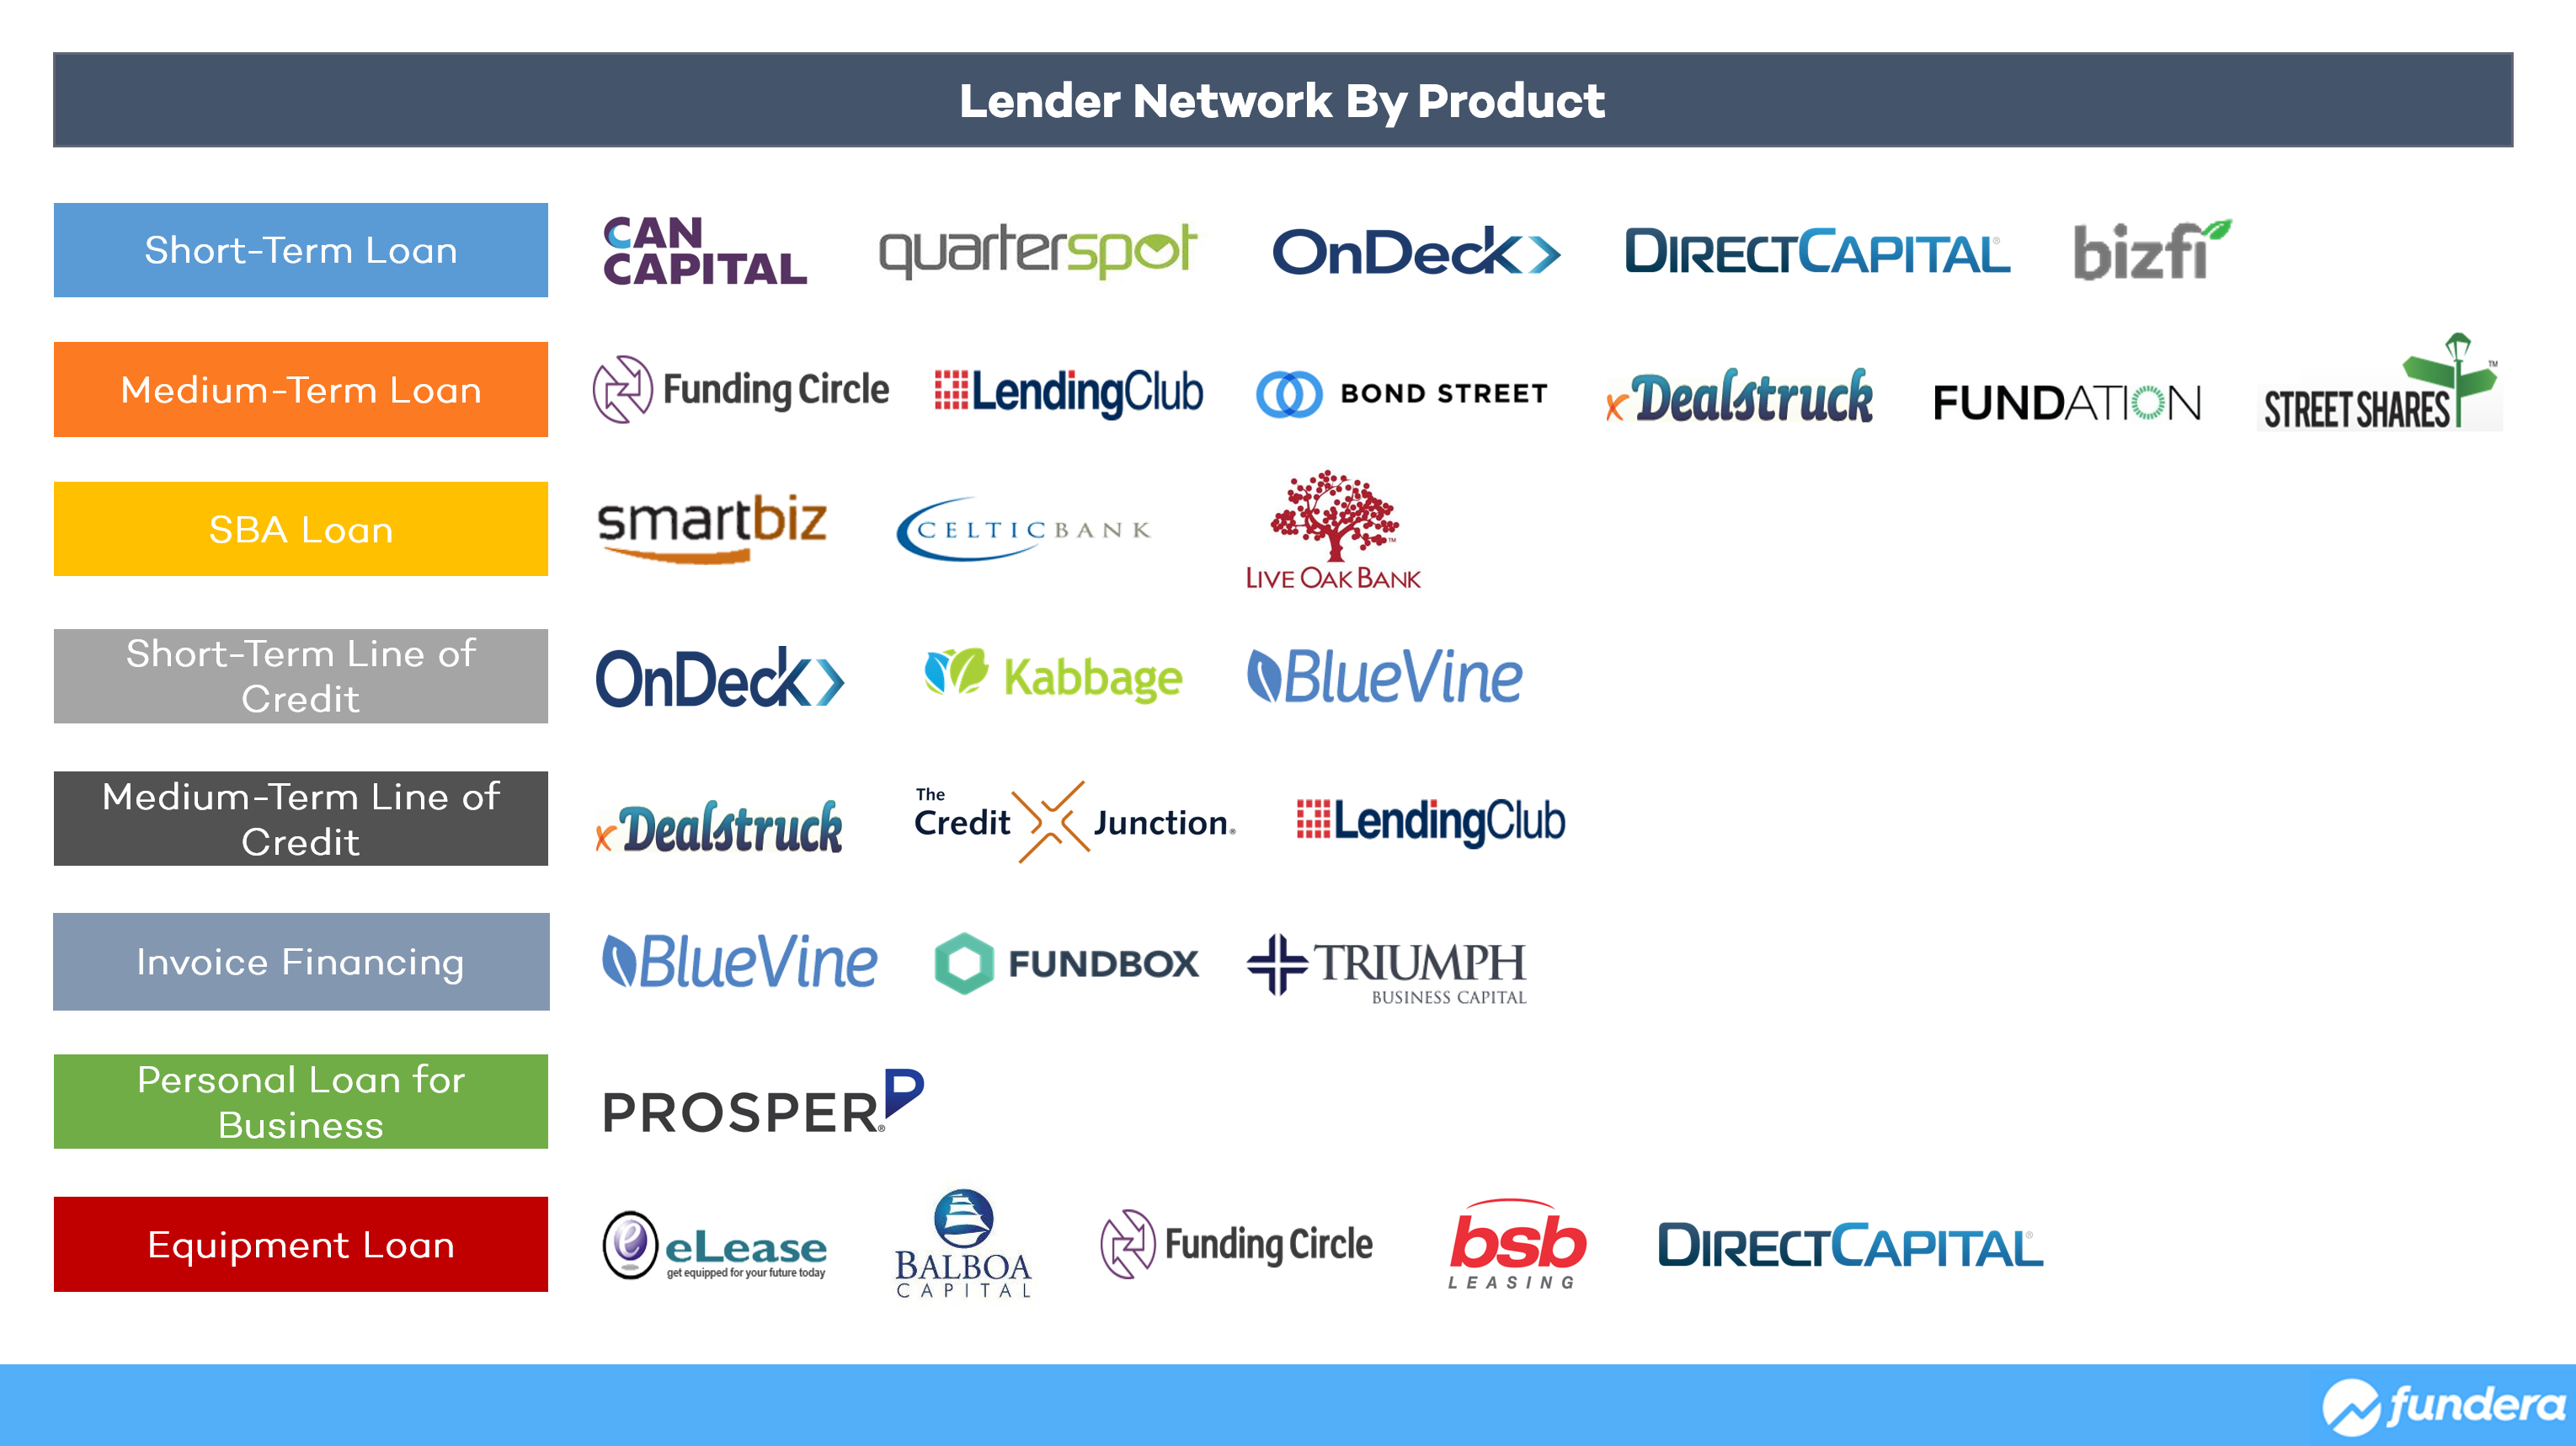 Lender-Network-by-Product